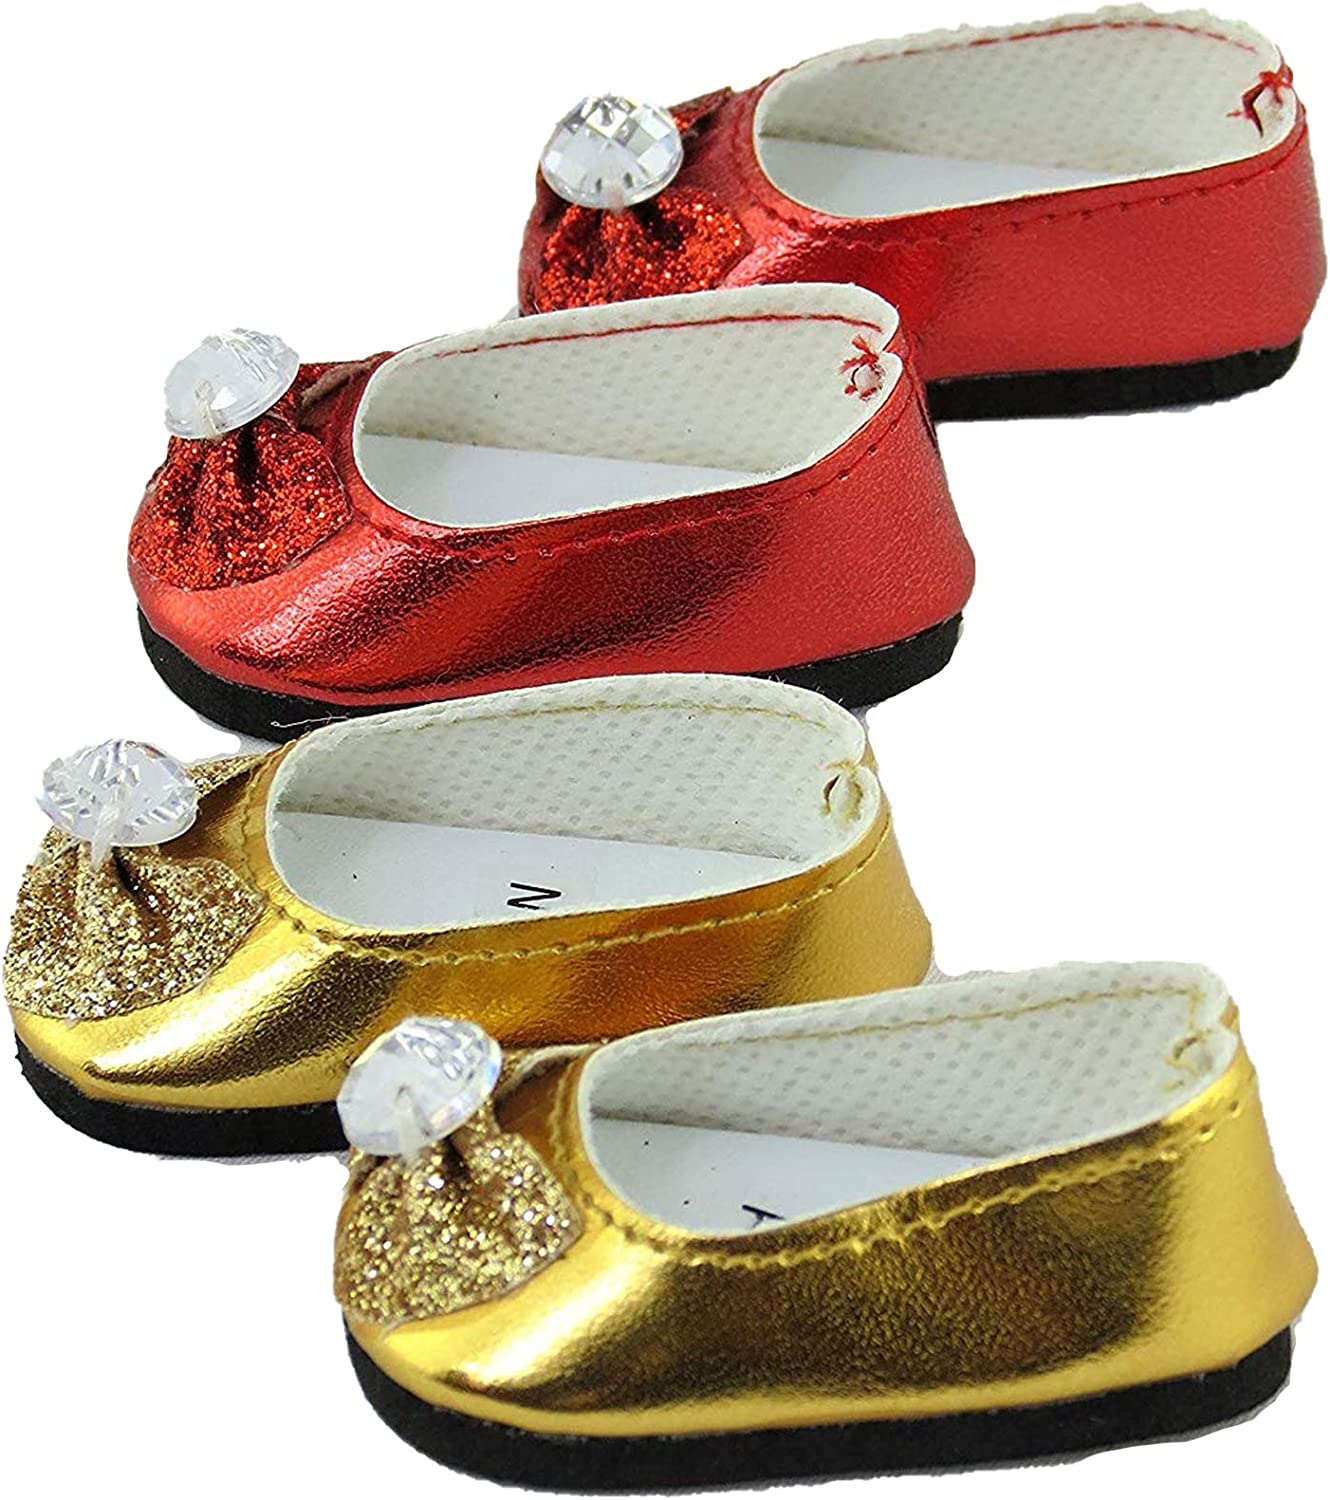 Gold Glitter Flats Shoes for 14.5 inch American Girl Wellie Wishers Dolls